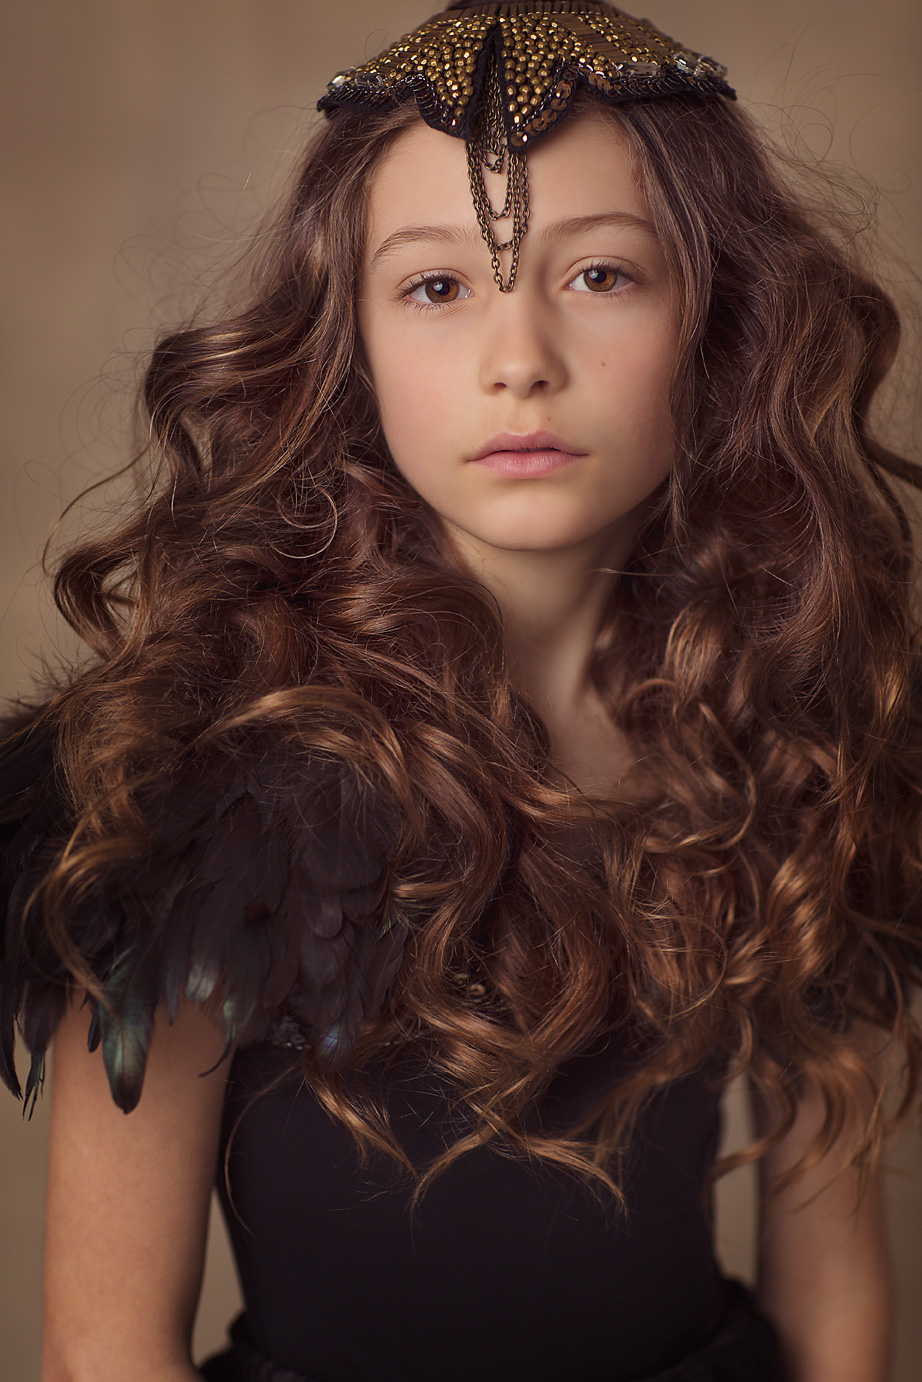 web-2-bianca-morello-montreal-portraits-photography-child-fine-art.jpg